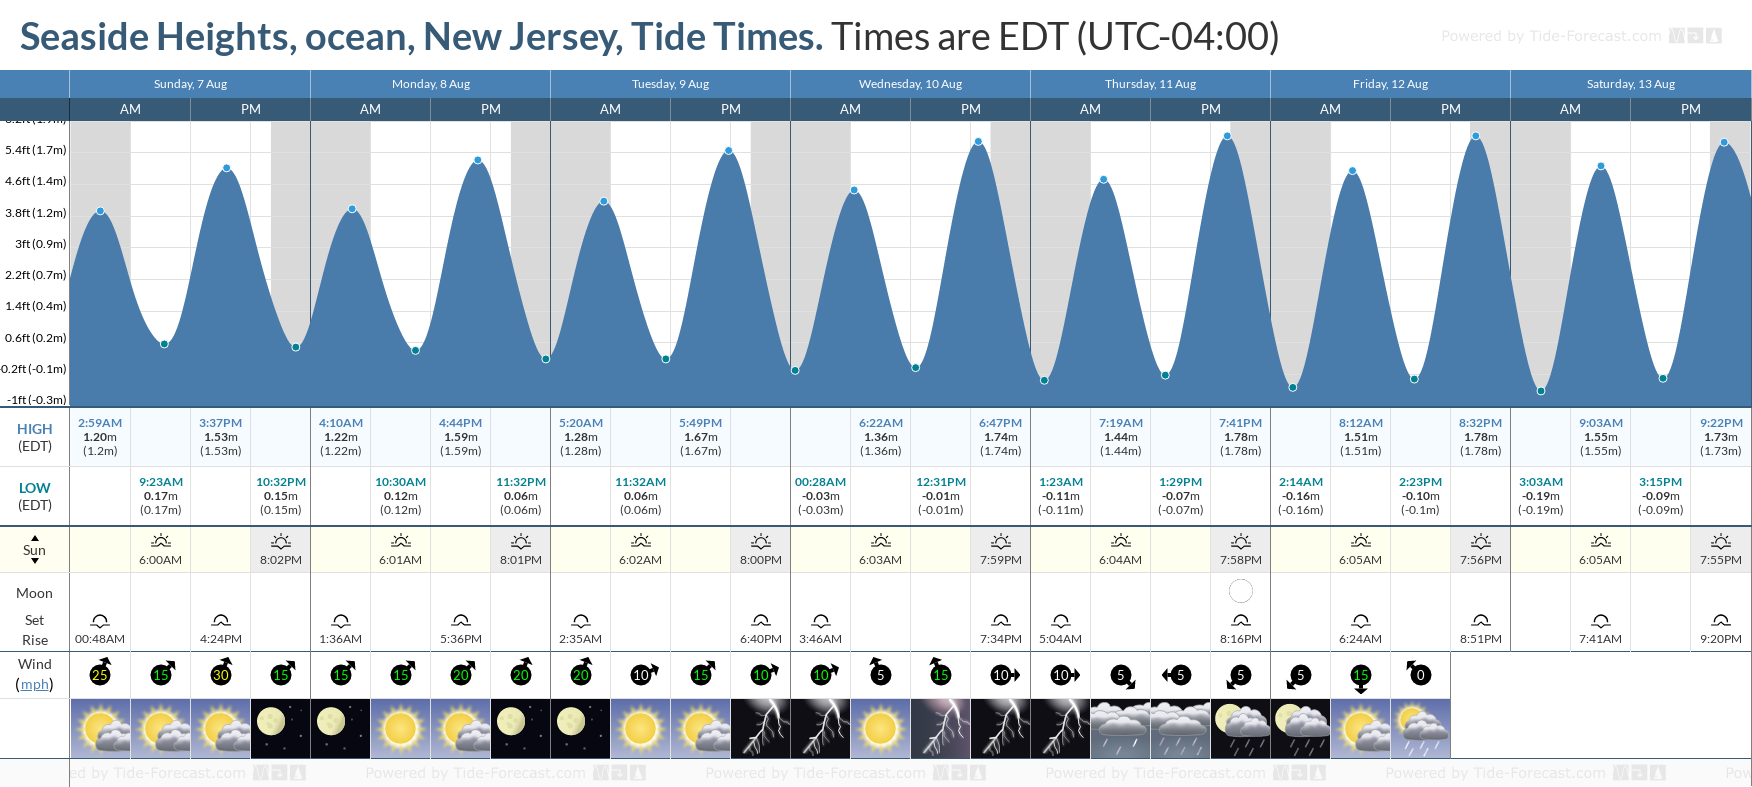 Seaside Heights, ocean, New Jersey Tide Chart including high and low tide tide times for the next 7 days